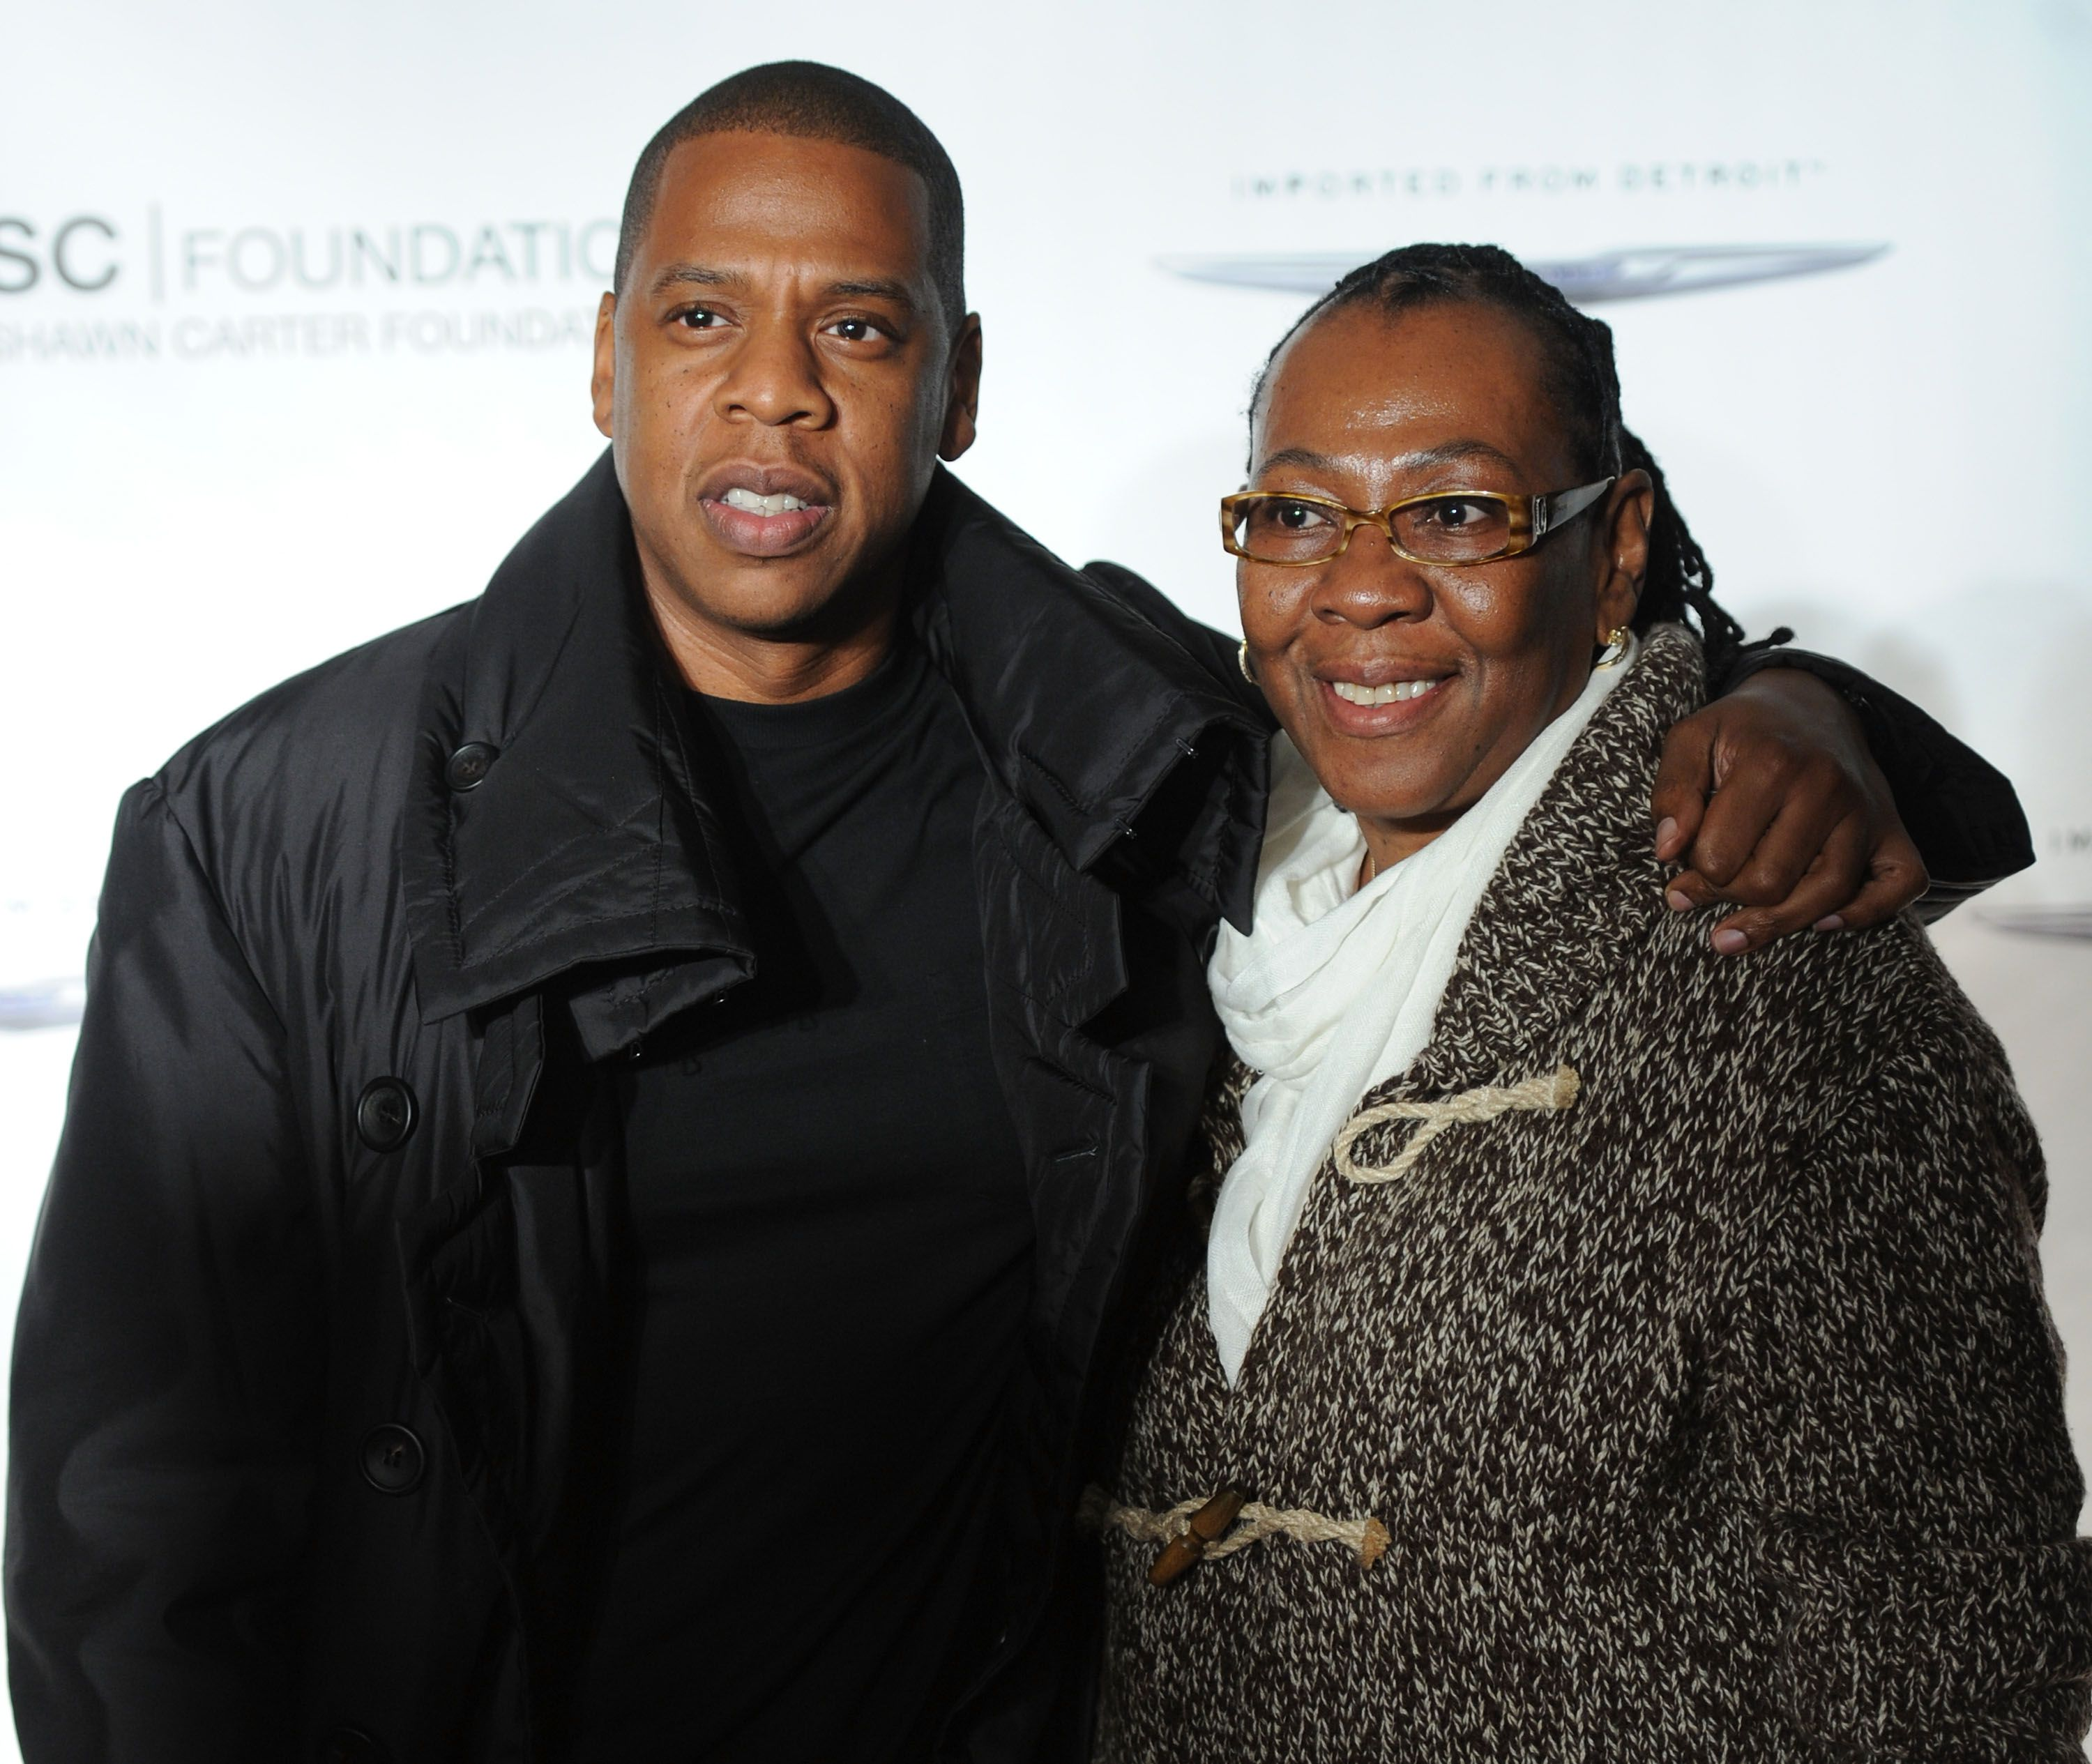 Jay-Z and his mother at an event